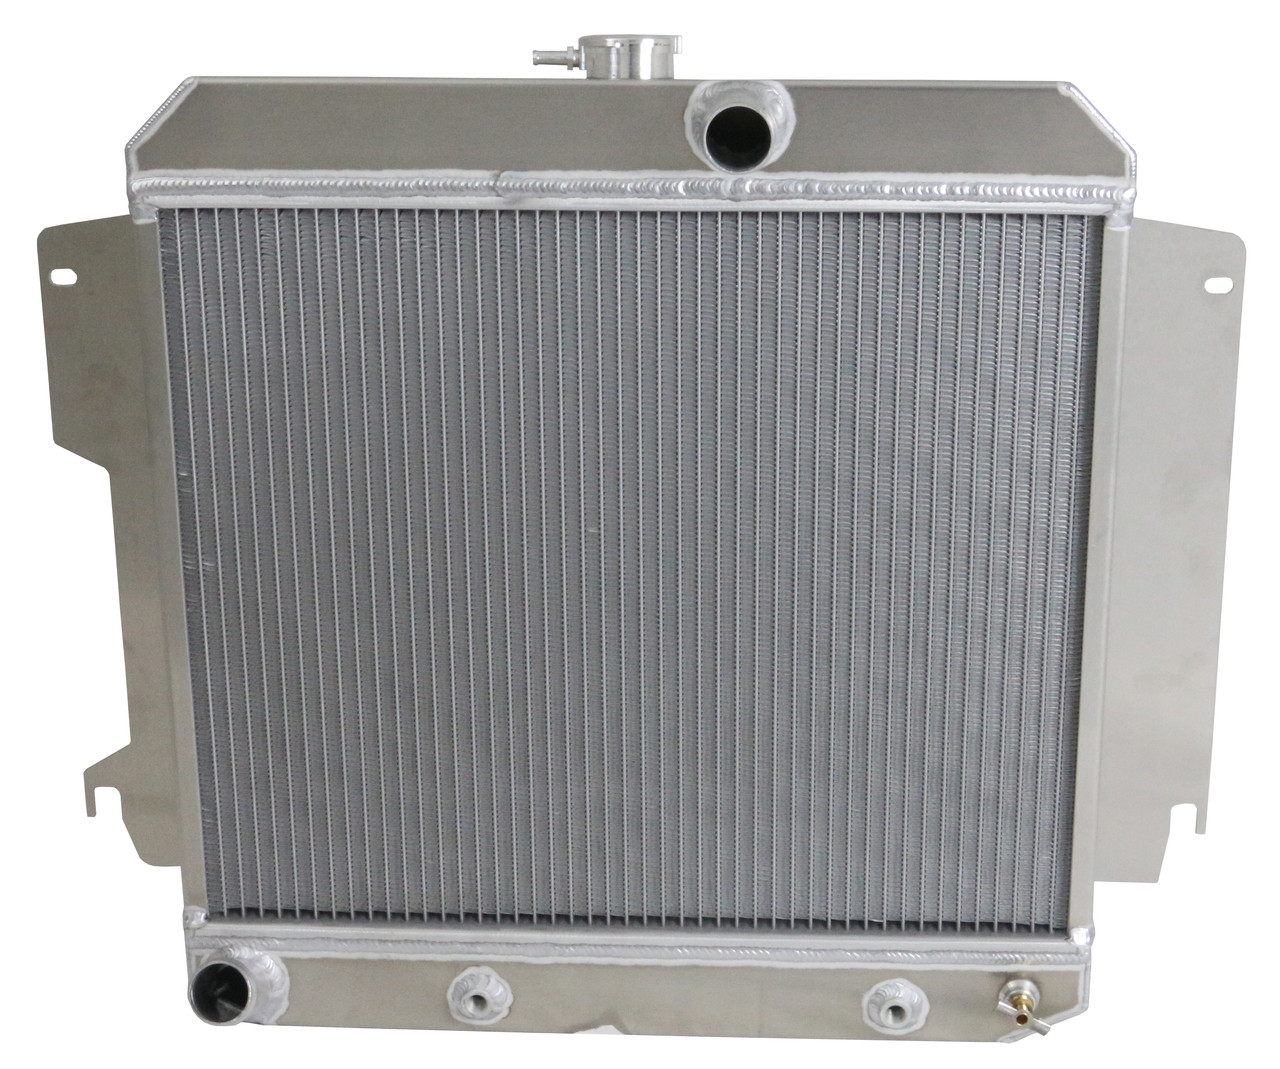 1963 Dodge 880 Aluminum Radiator